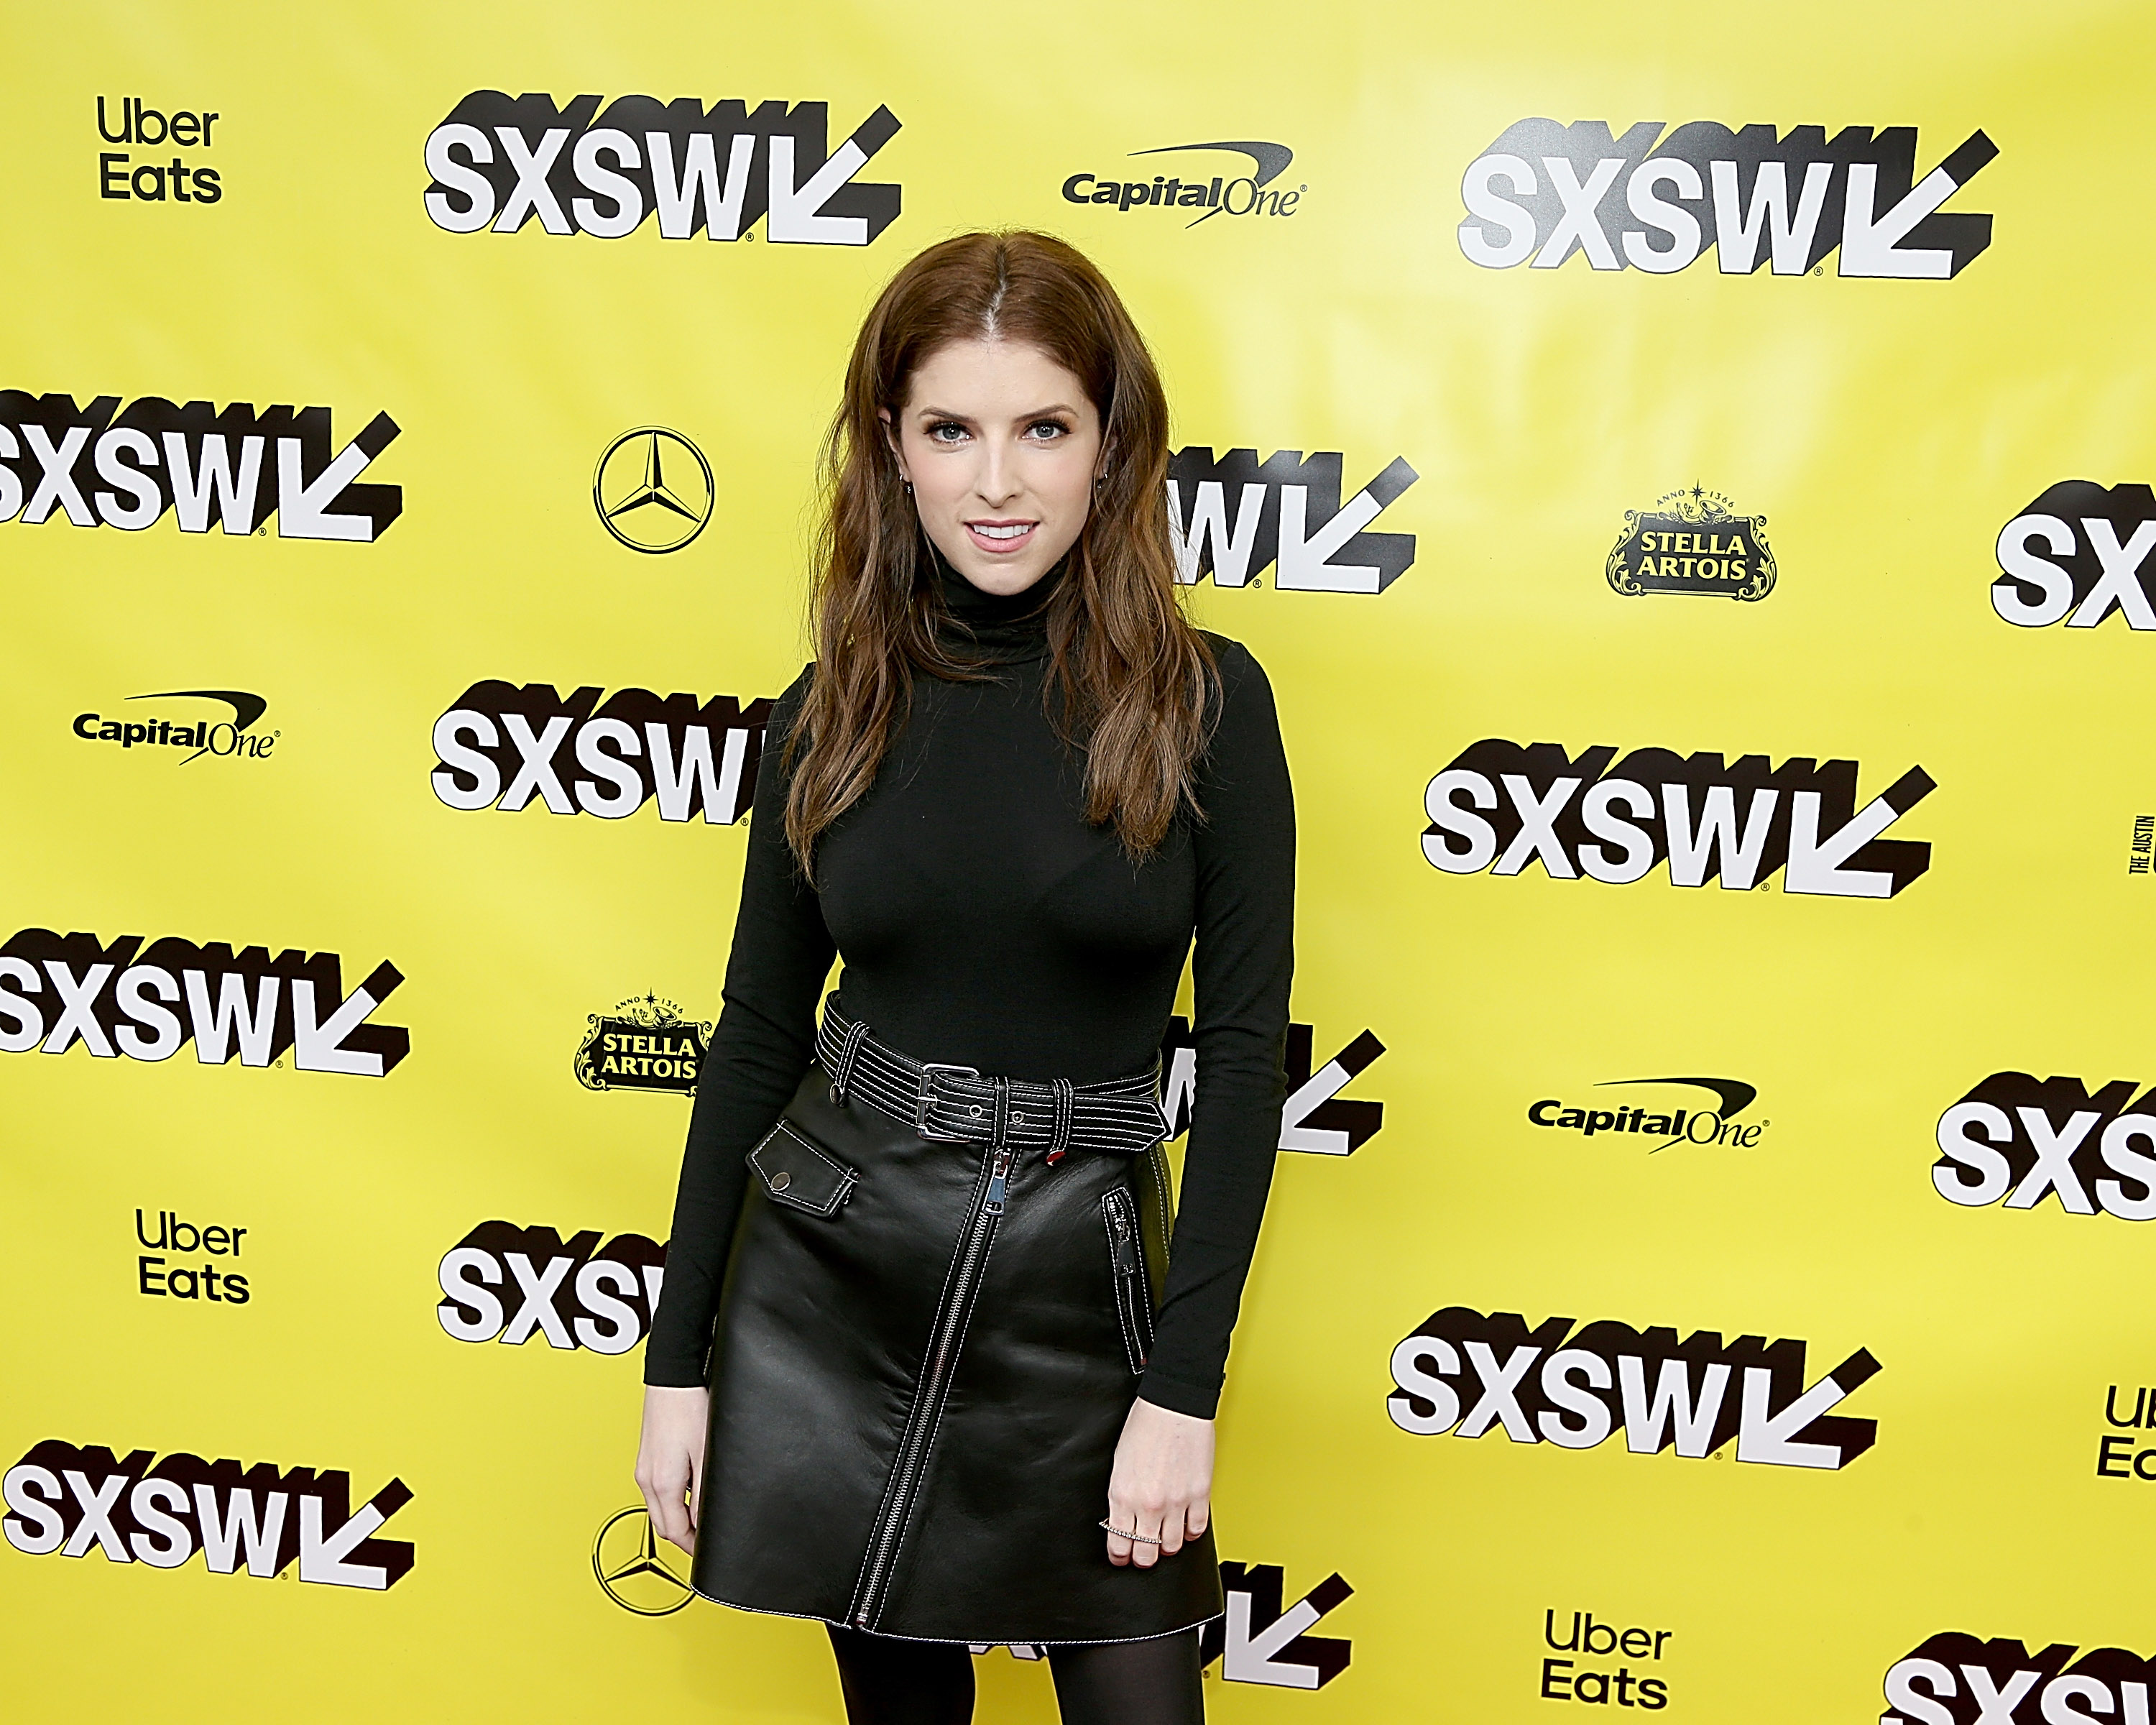 Anna Kendrick is coming to our TV screens very soon in a brand new rom-com series